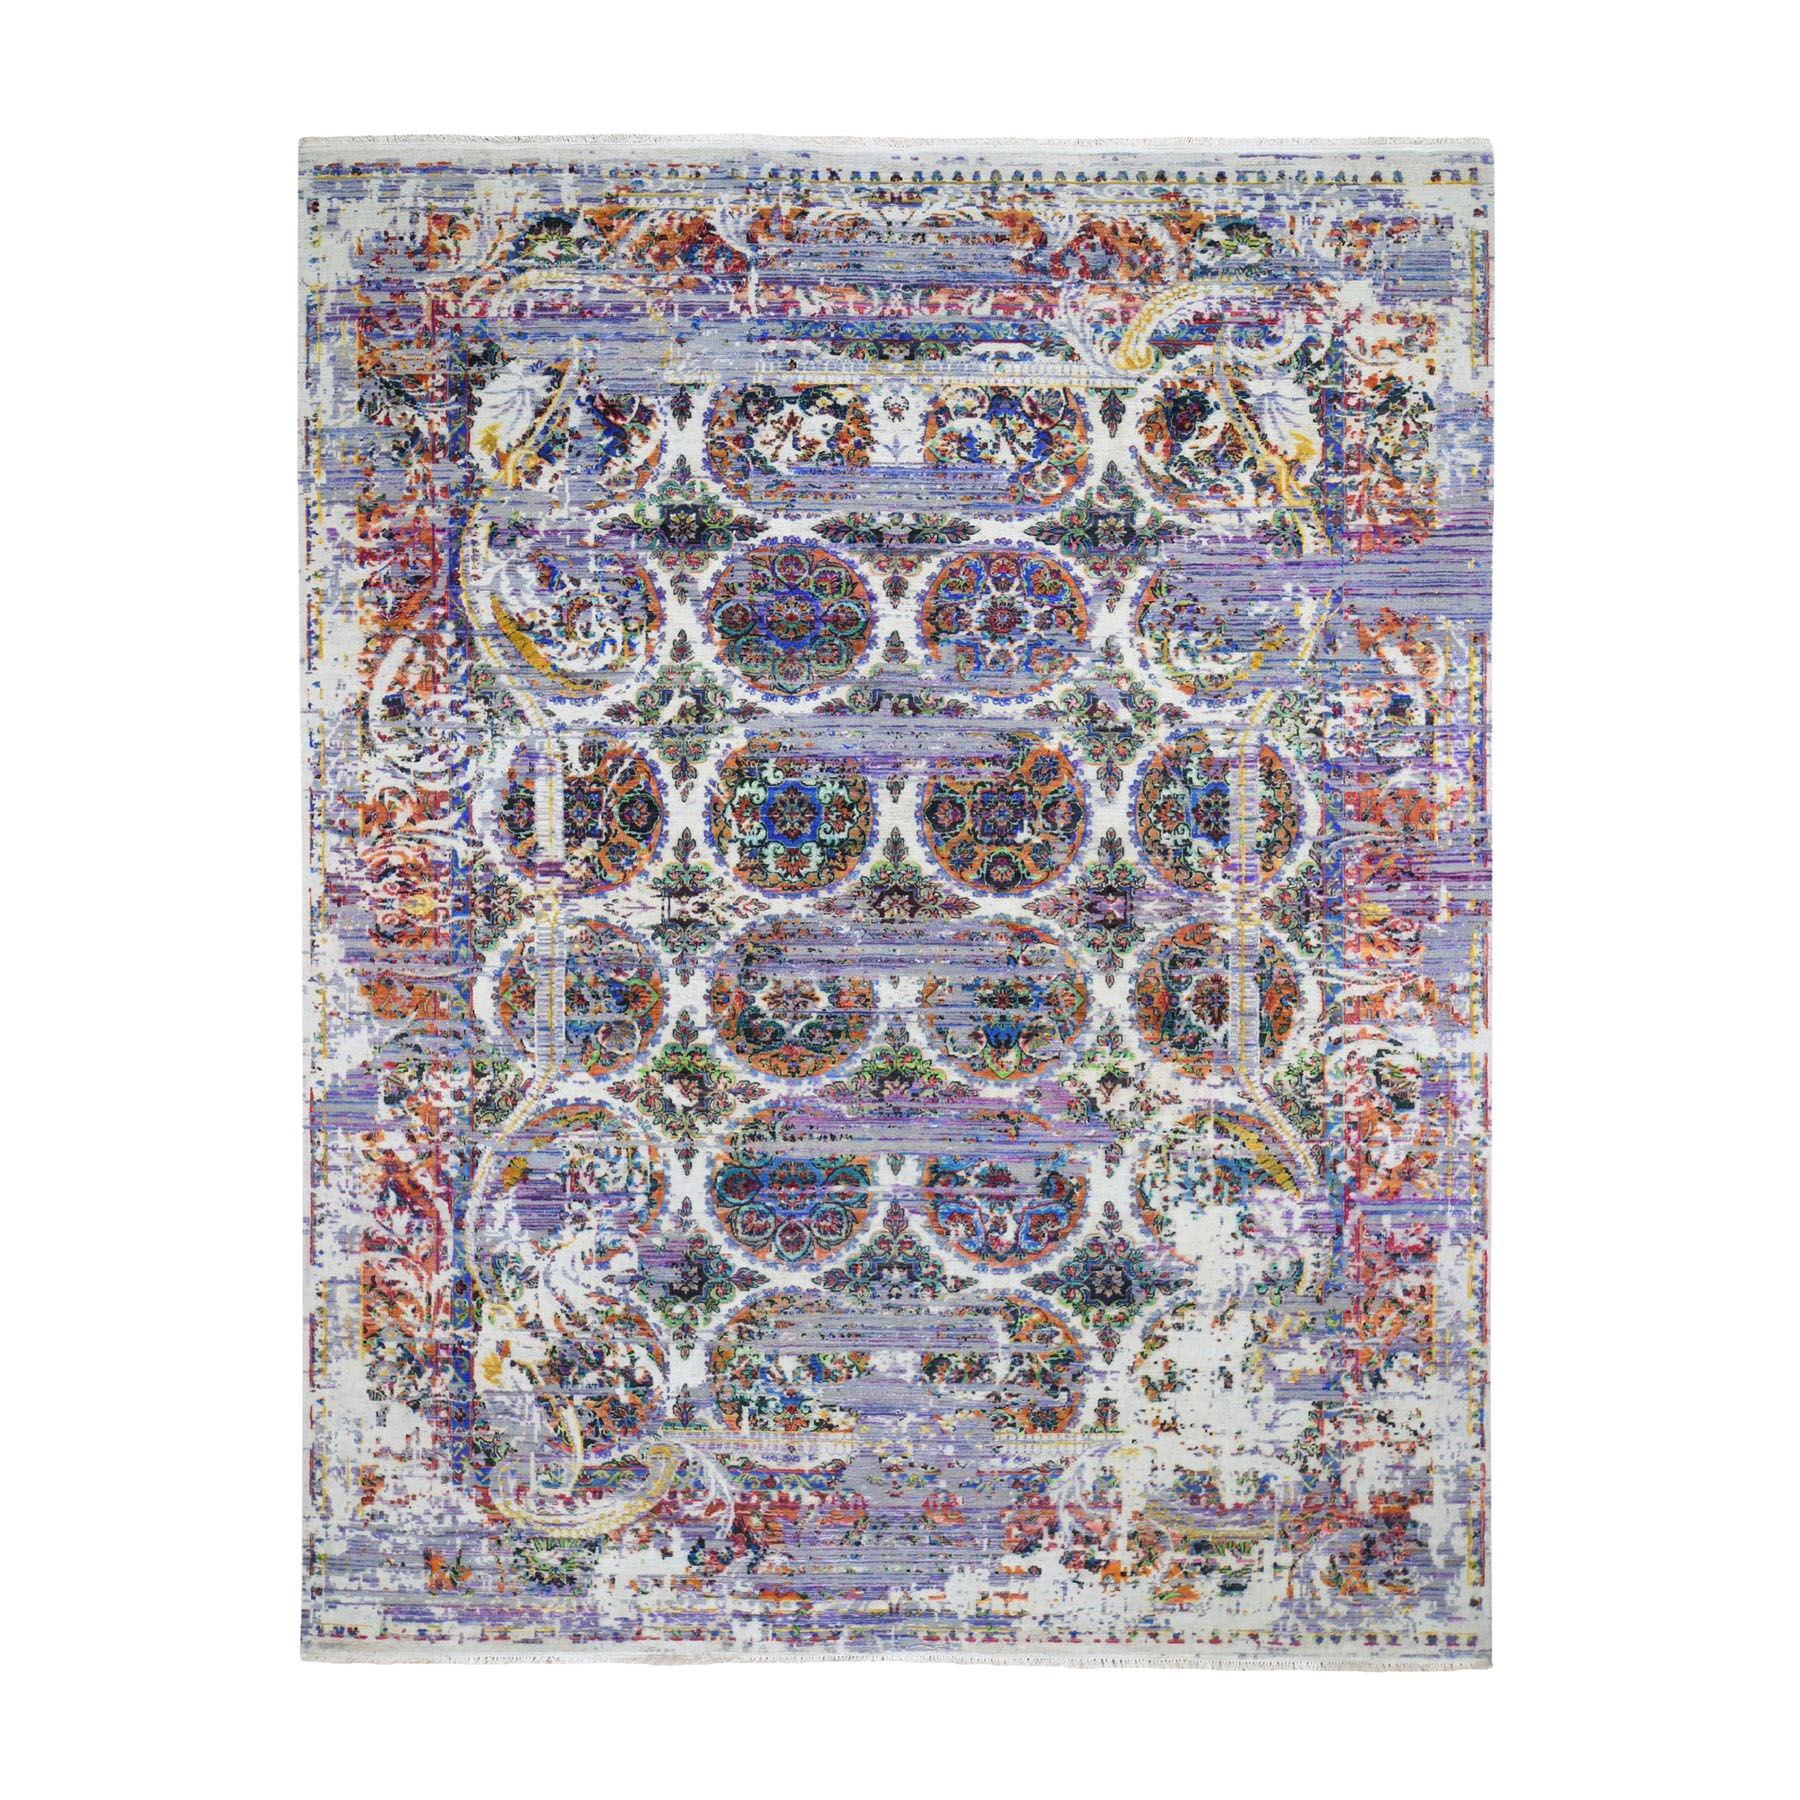 8'X10' Erased Rossets, Colorful Sari Silk With Oxidized Wool Hand-Knotted Oriental Rug moad69ce